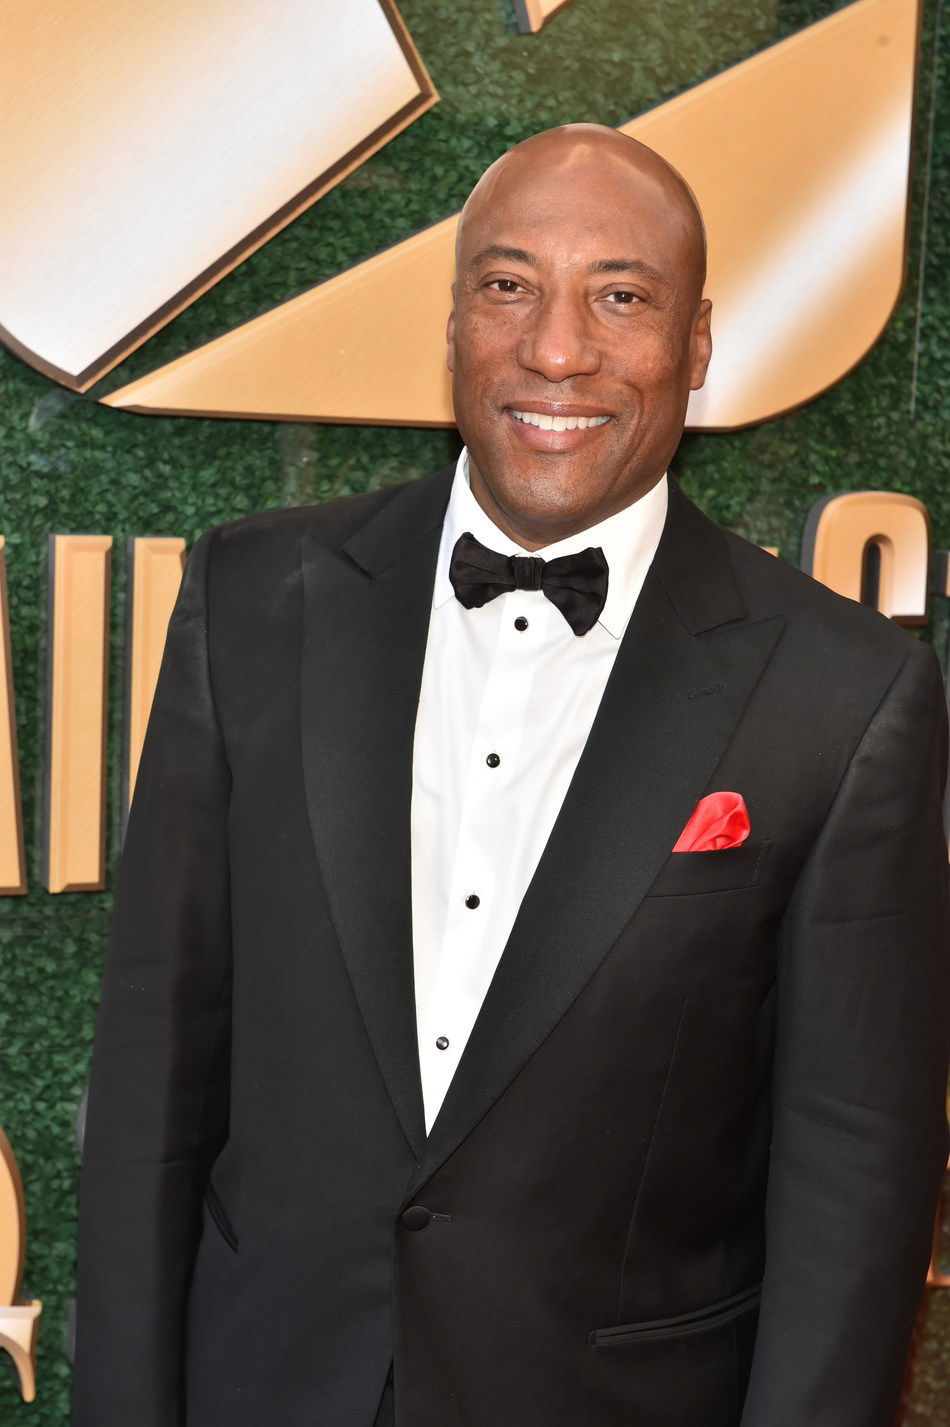 Byron Allen, founder, chairman and CEO of Entertainment Studios/Allen Media